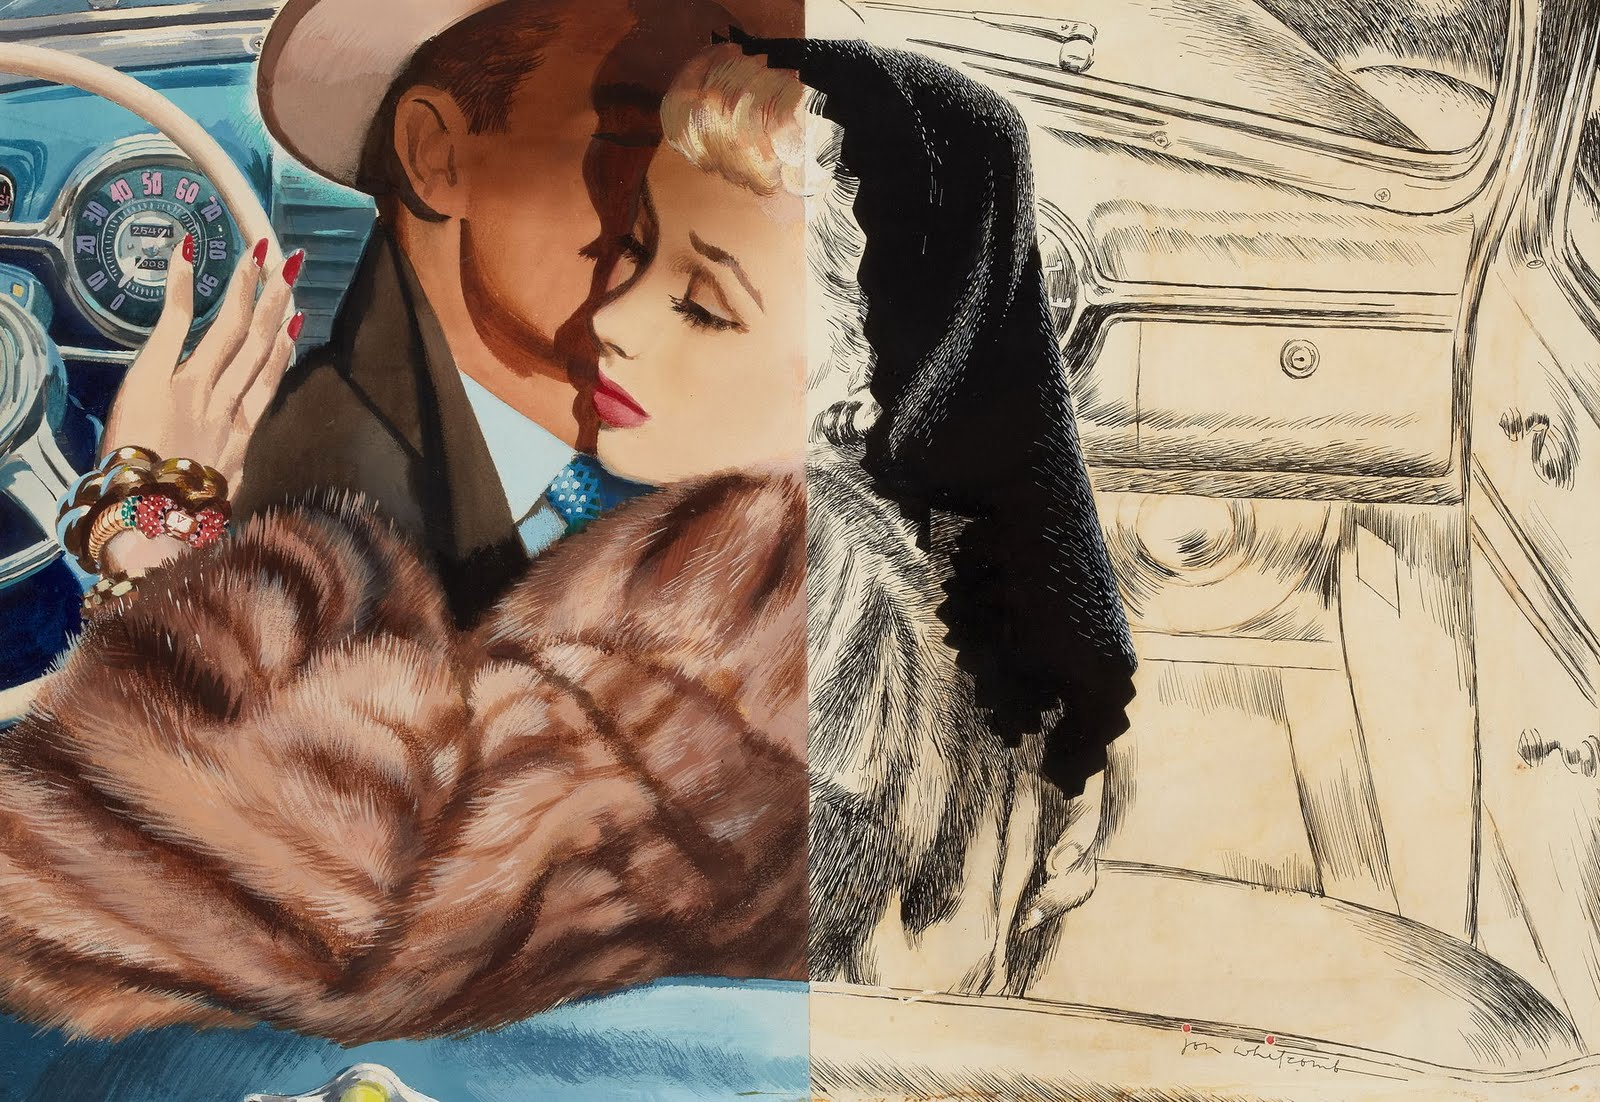 Half painted pin-up art by Jon Whitcomb of a couple in car hugging